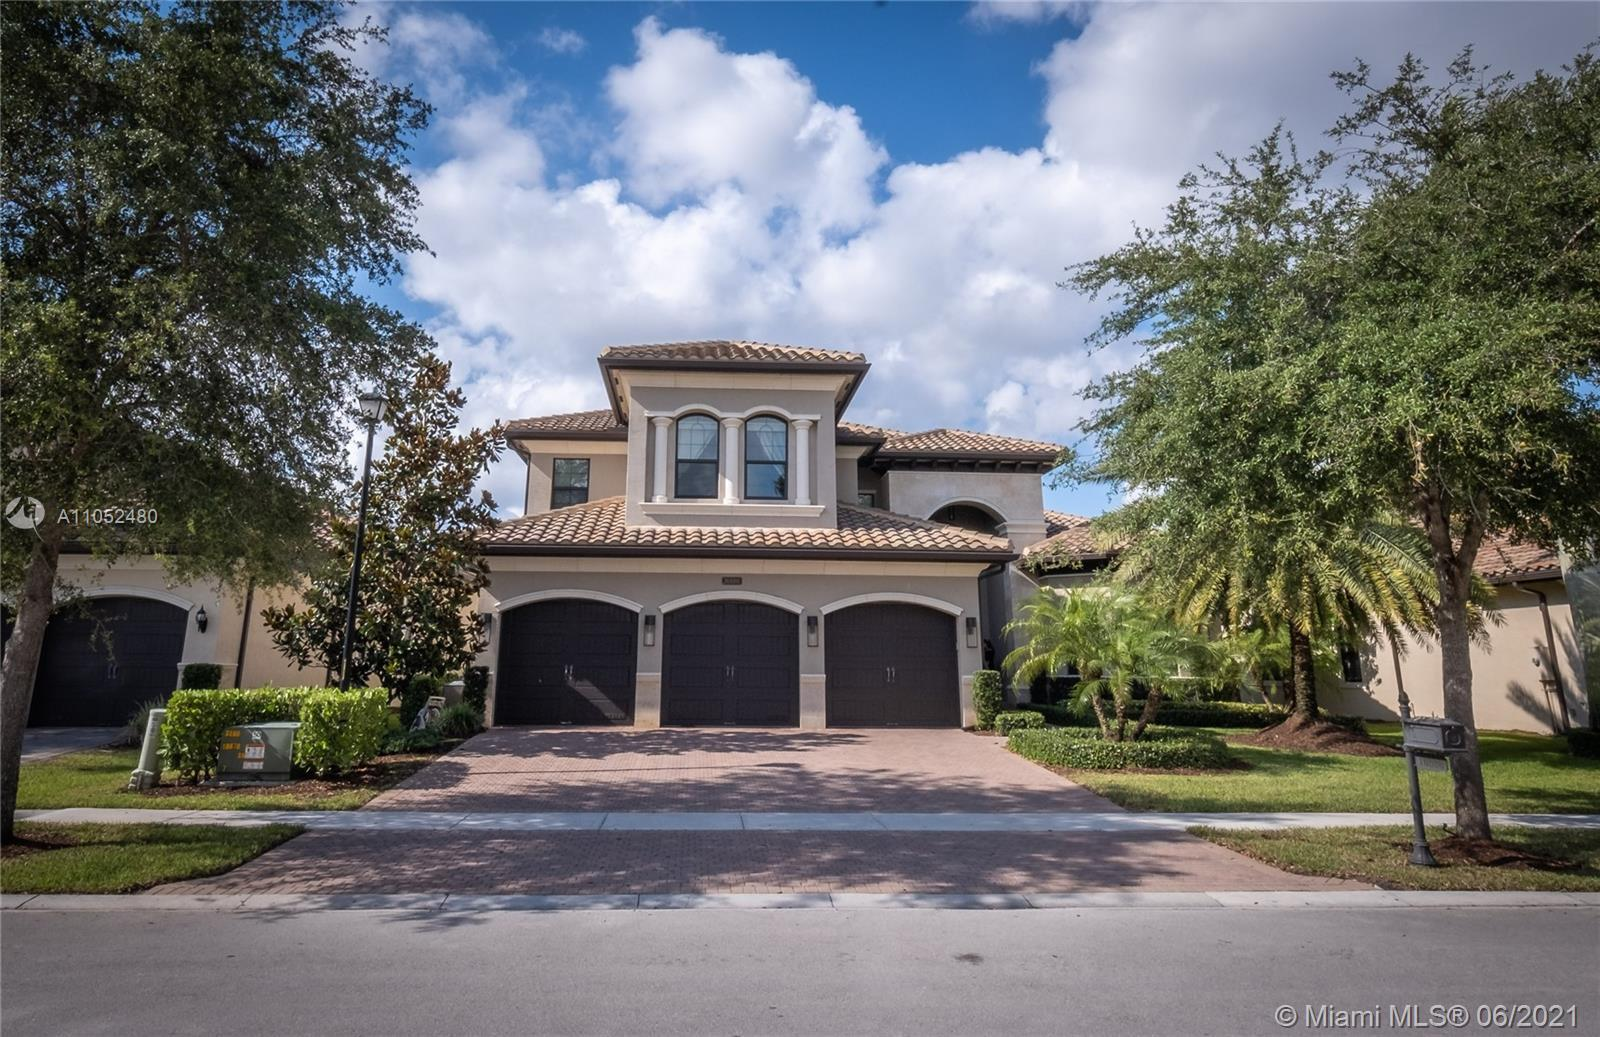 Your search is over! This prestine and beautiful bright two-story Bassano Model has 5 bedrooms and 7